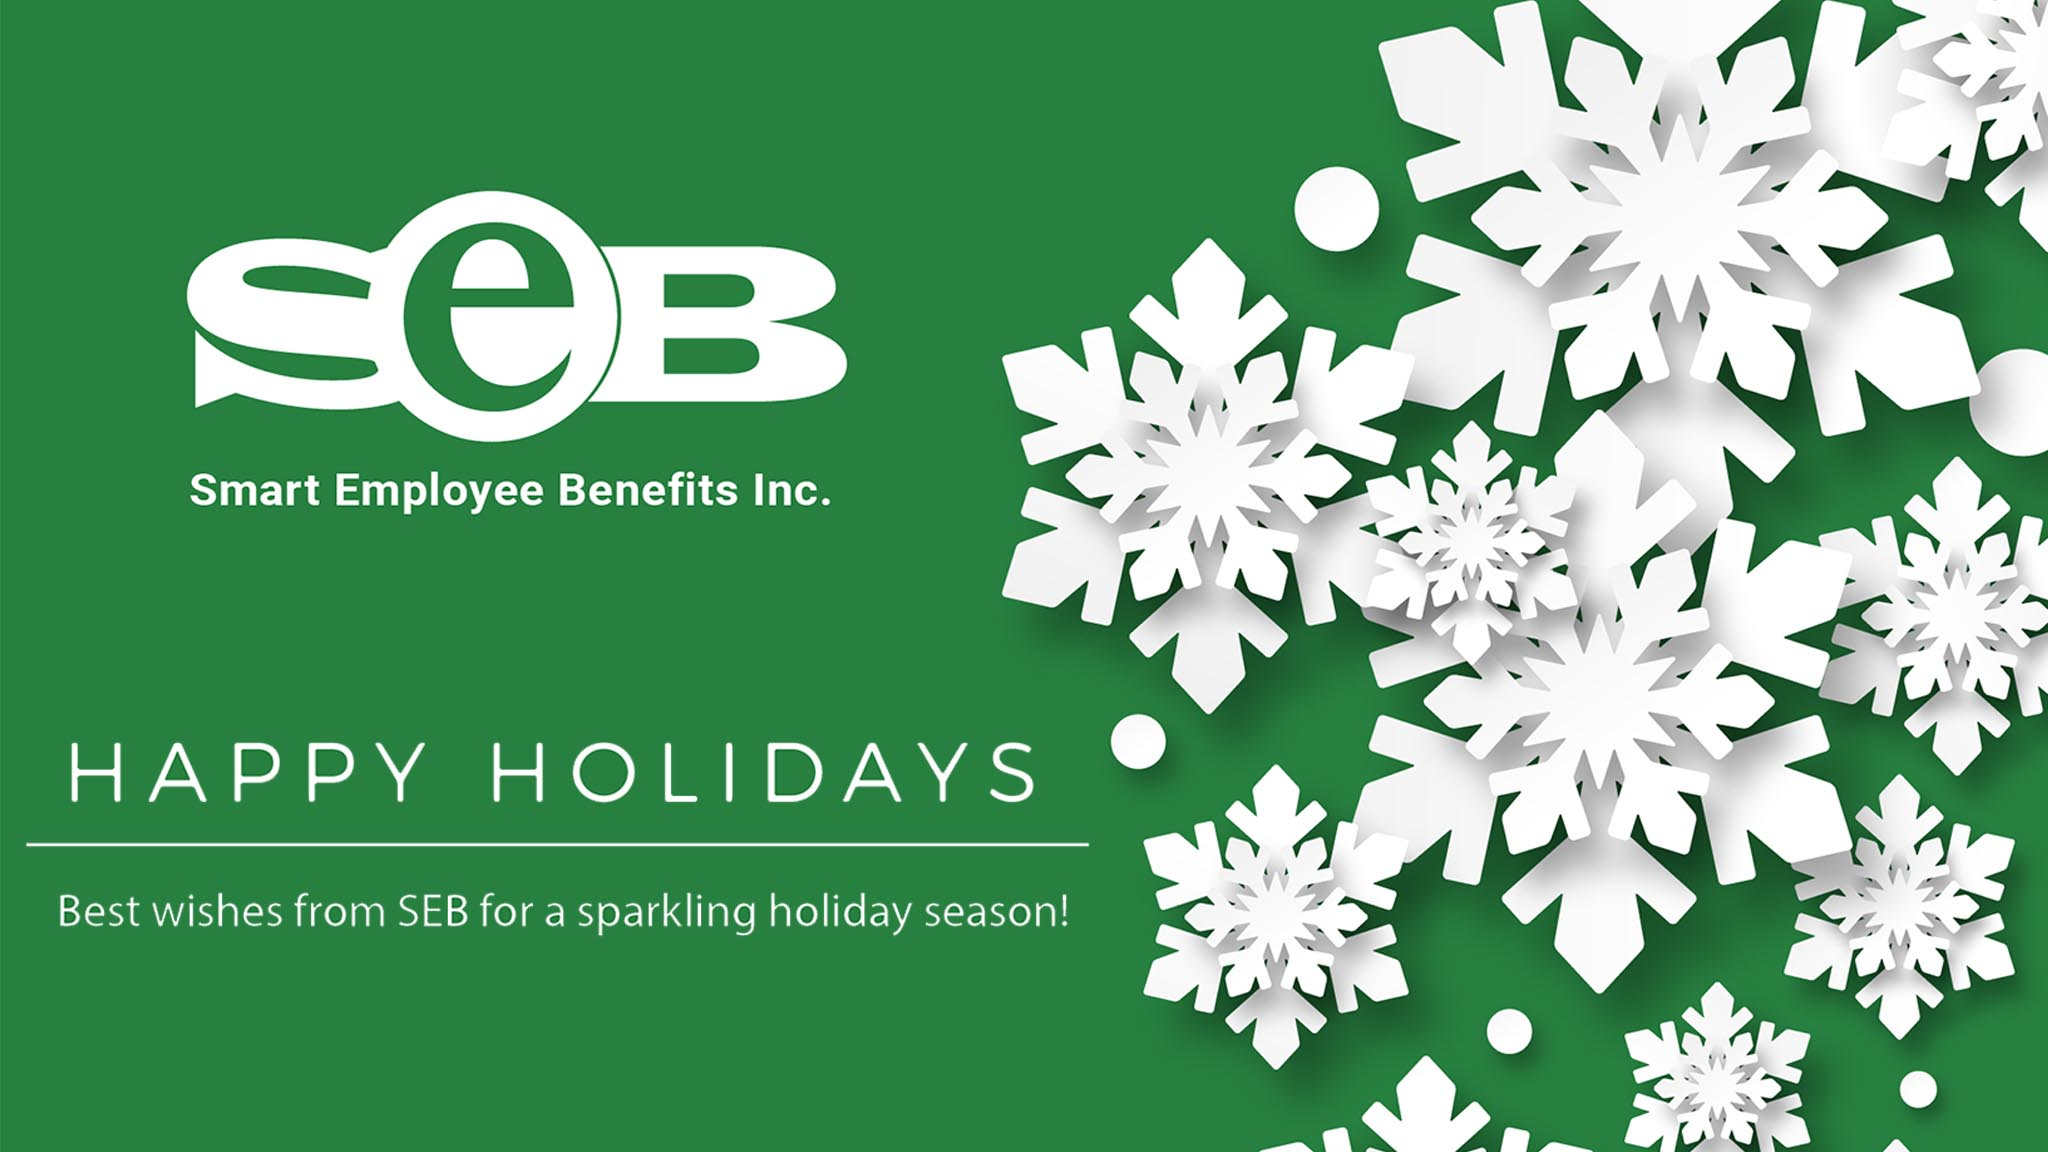 Happy Holidays. Best wishes from SEB for a sparkling holiday season.